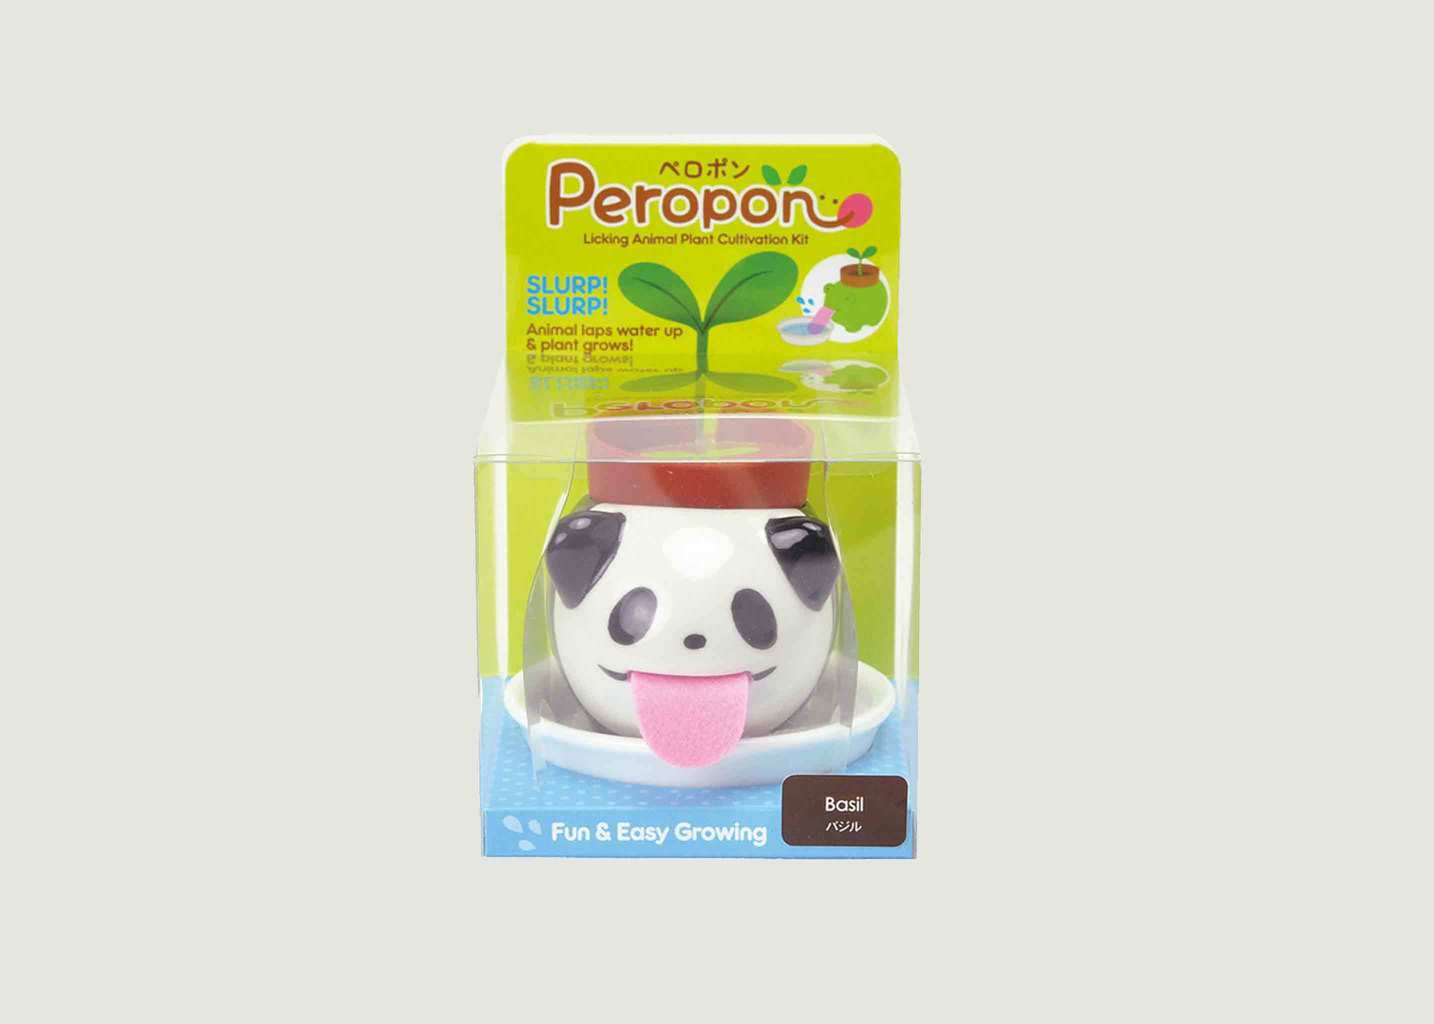 Pot Peropon Panda  - Noted